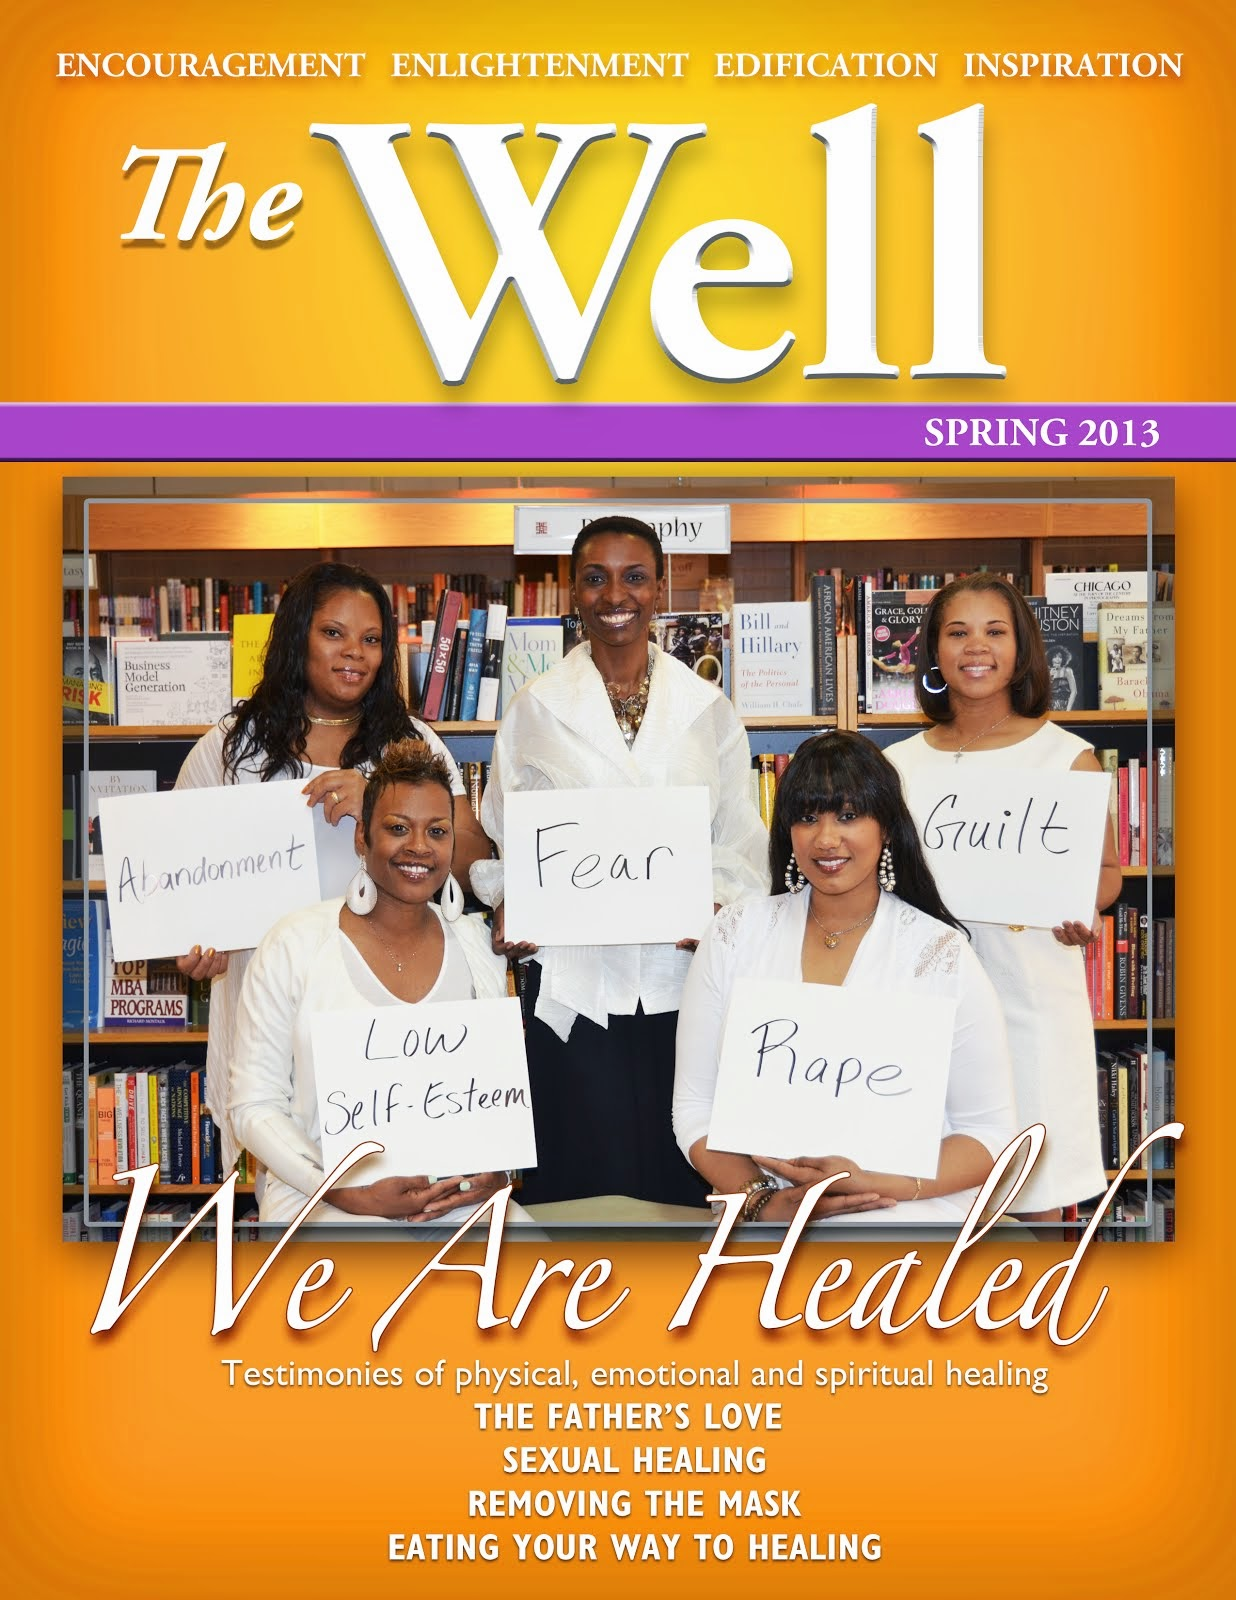 http://www.thewellmagazine.blogspot.com/p/resources.html